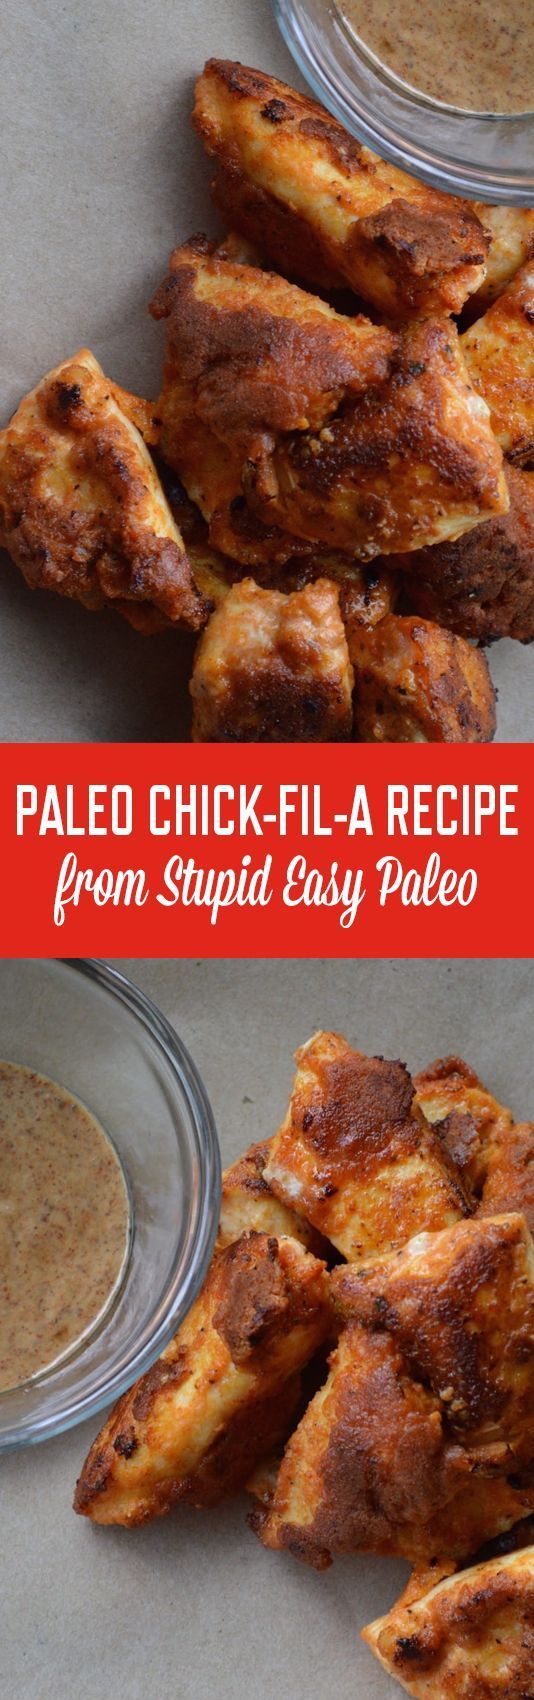 Make this Paleo Chick-fil-A at home for a healthier version of the fast food favorite! The secret is in the pickle juice!